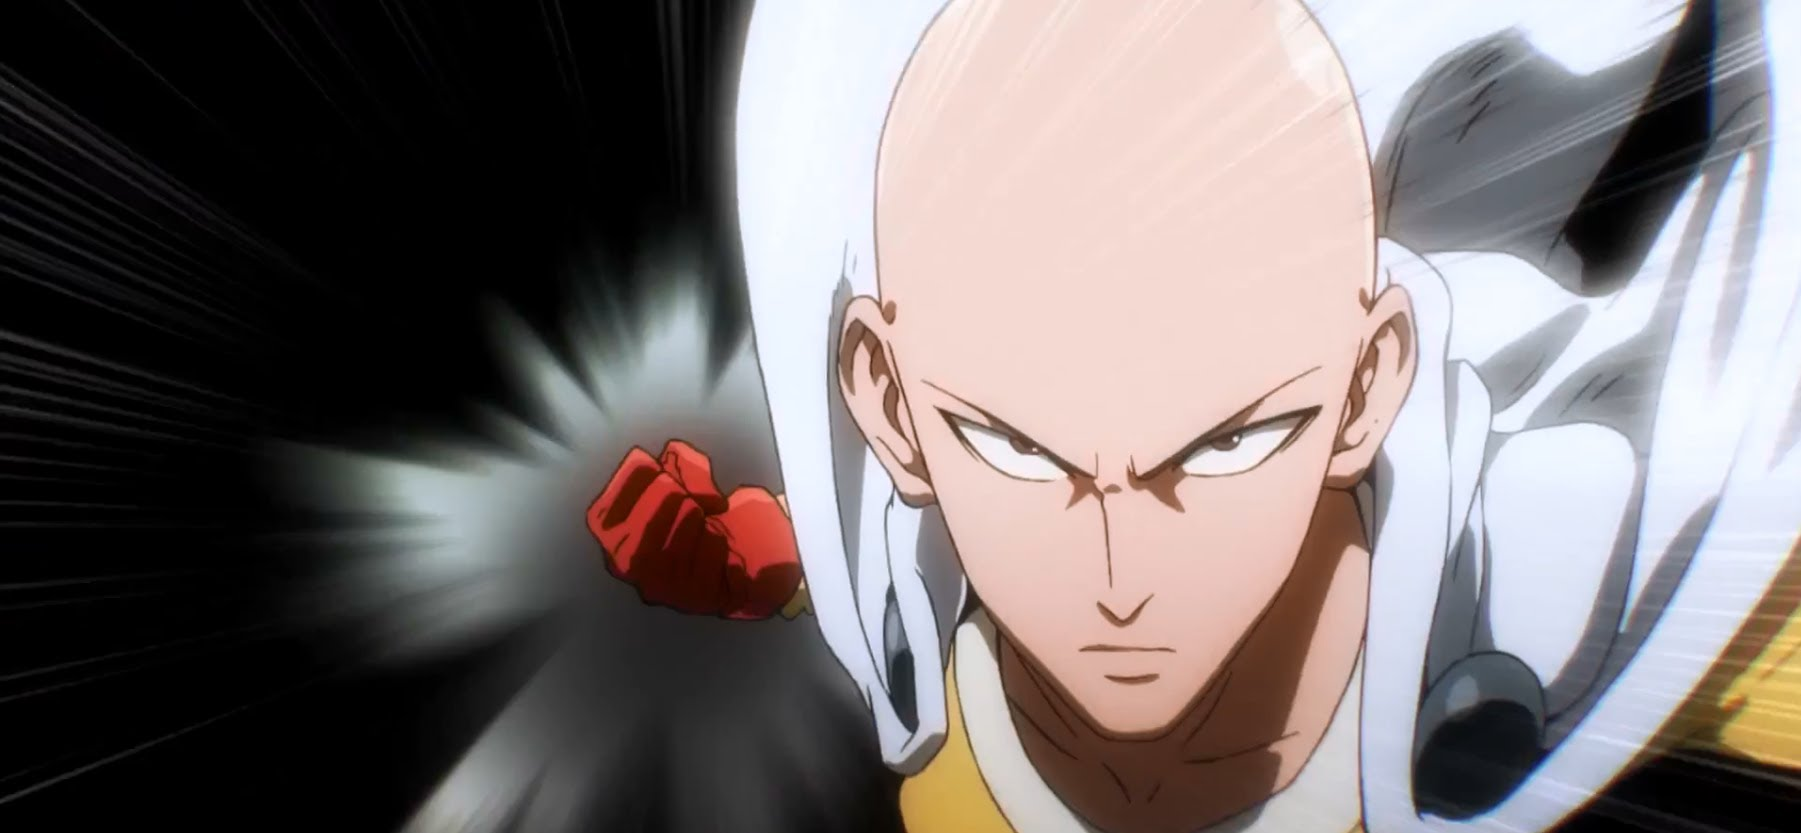 Will the Production Studio of 'One Punch Man' Season 3 Change